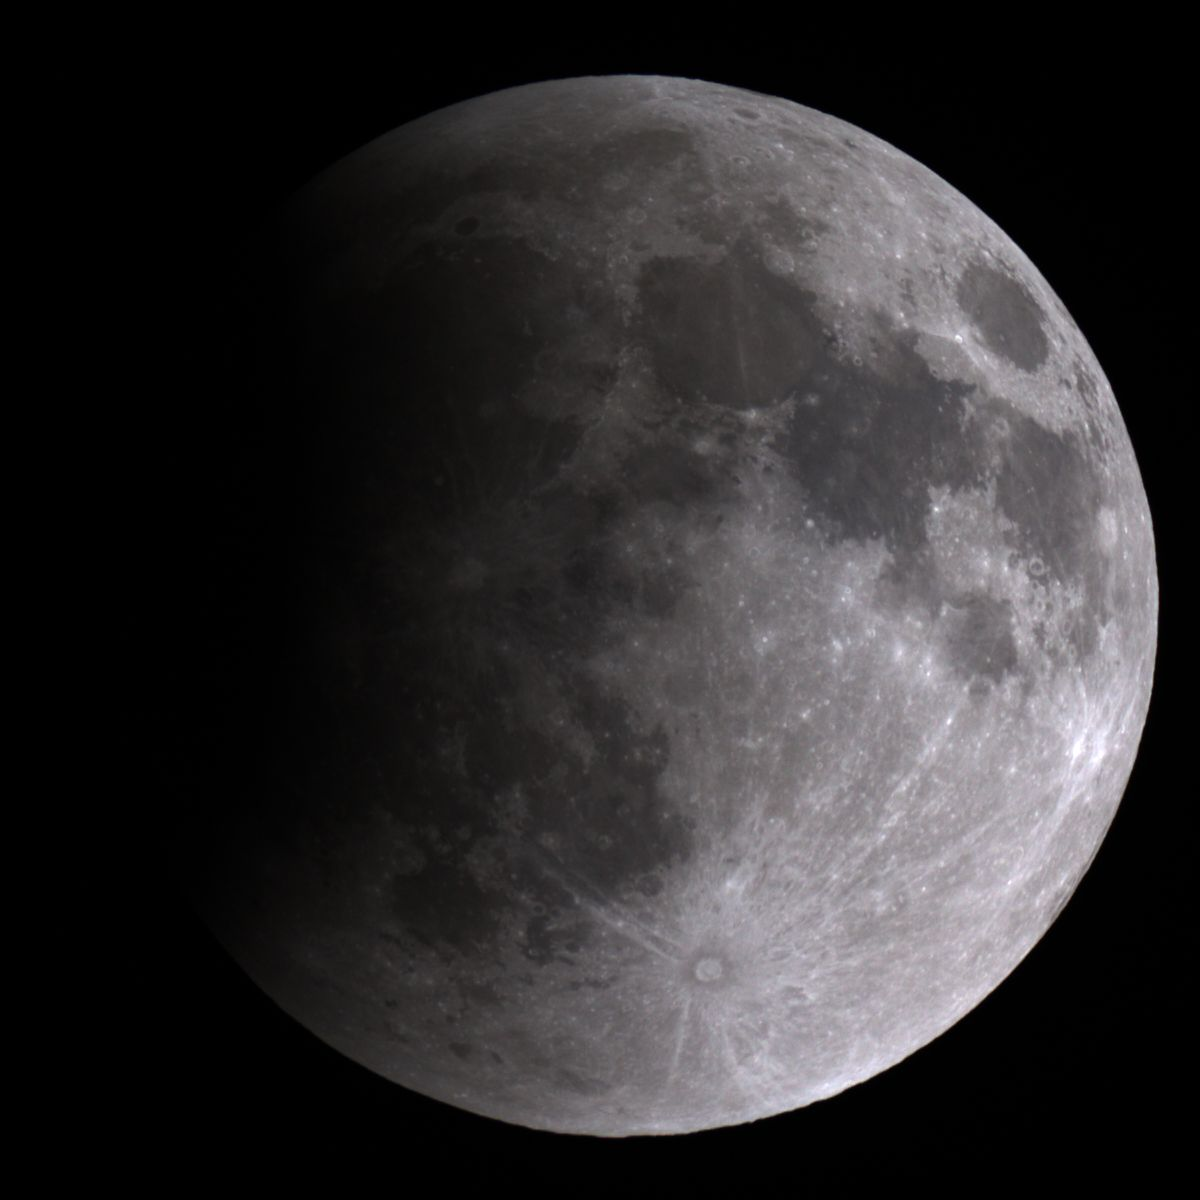 April 15, 2014 Total Lunar Eclipse Begins: Mt. Lemmon SkyCenter